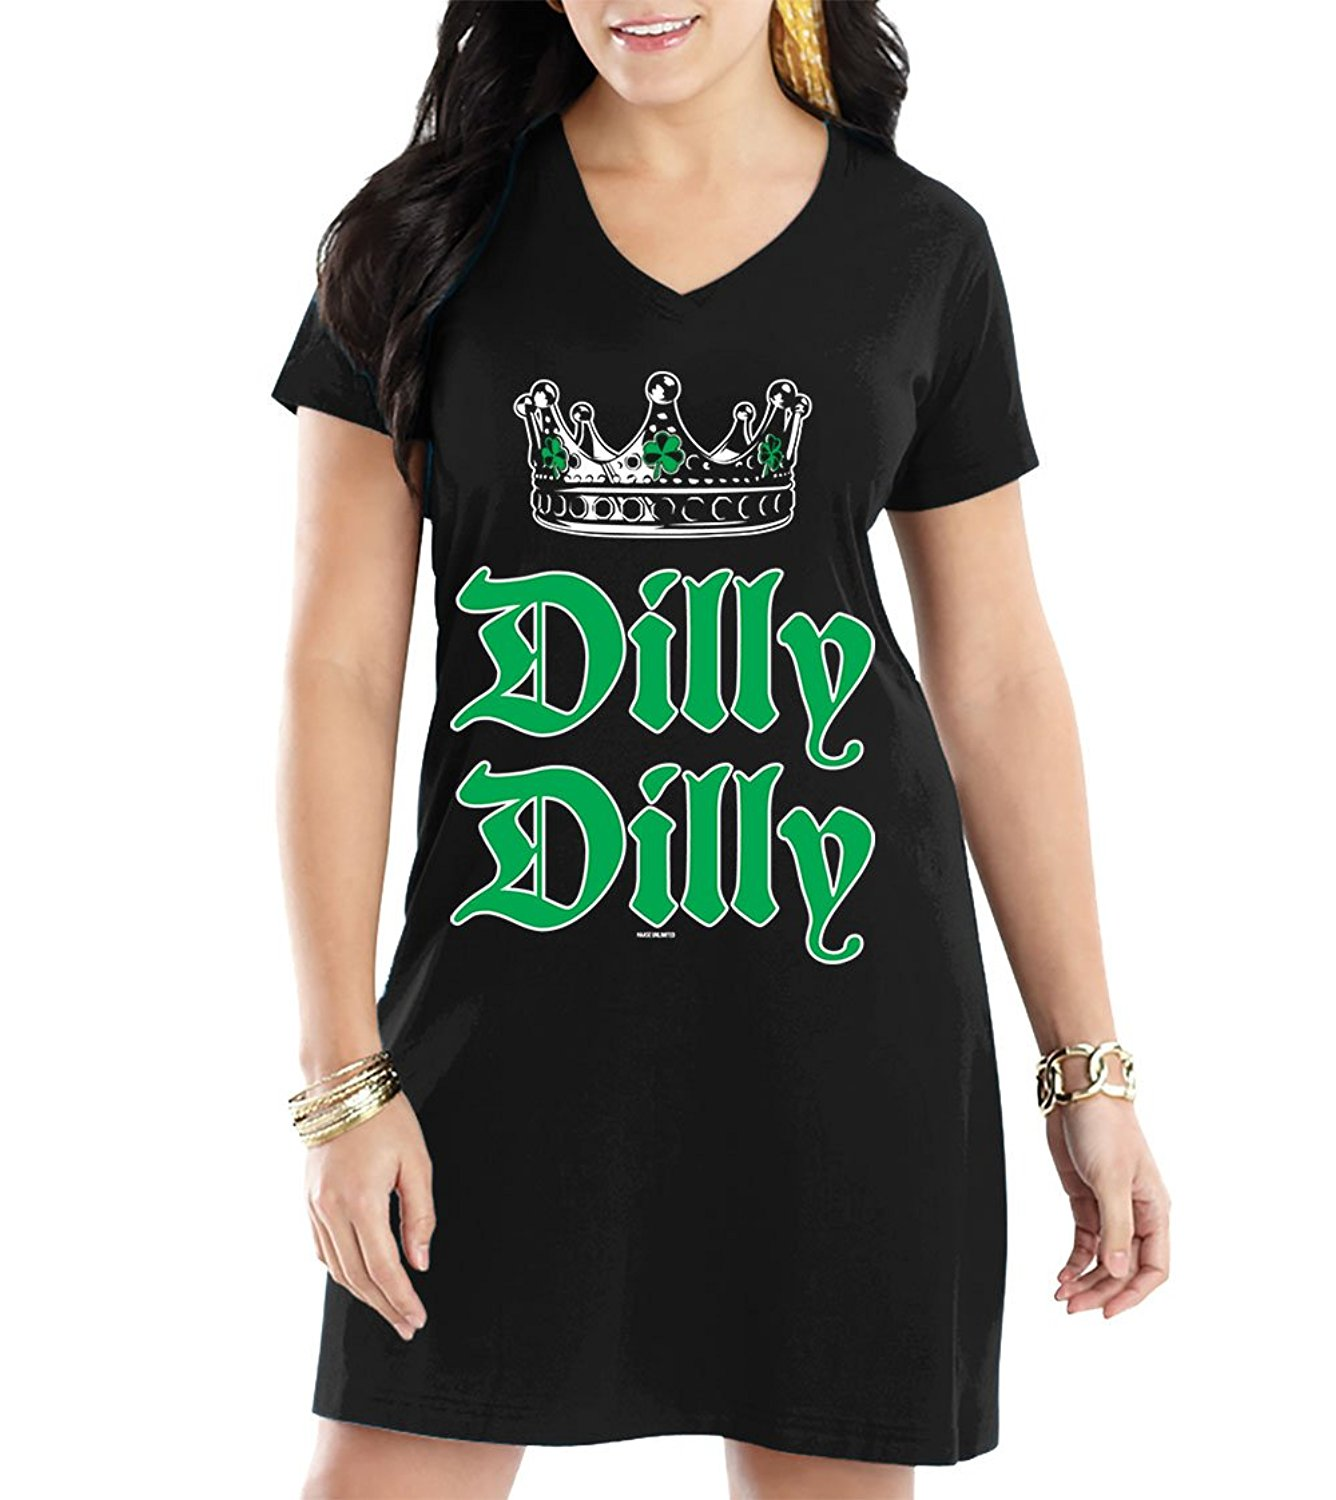 HAASE UNLIMITED Women's Dilly Dilly ST. Patricks Day V-Neck Nightshirt